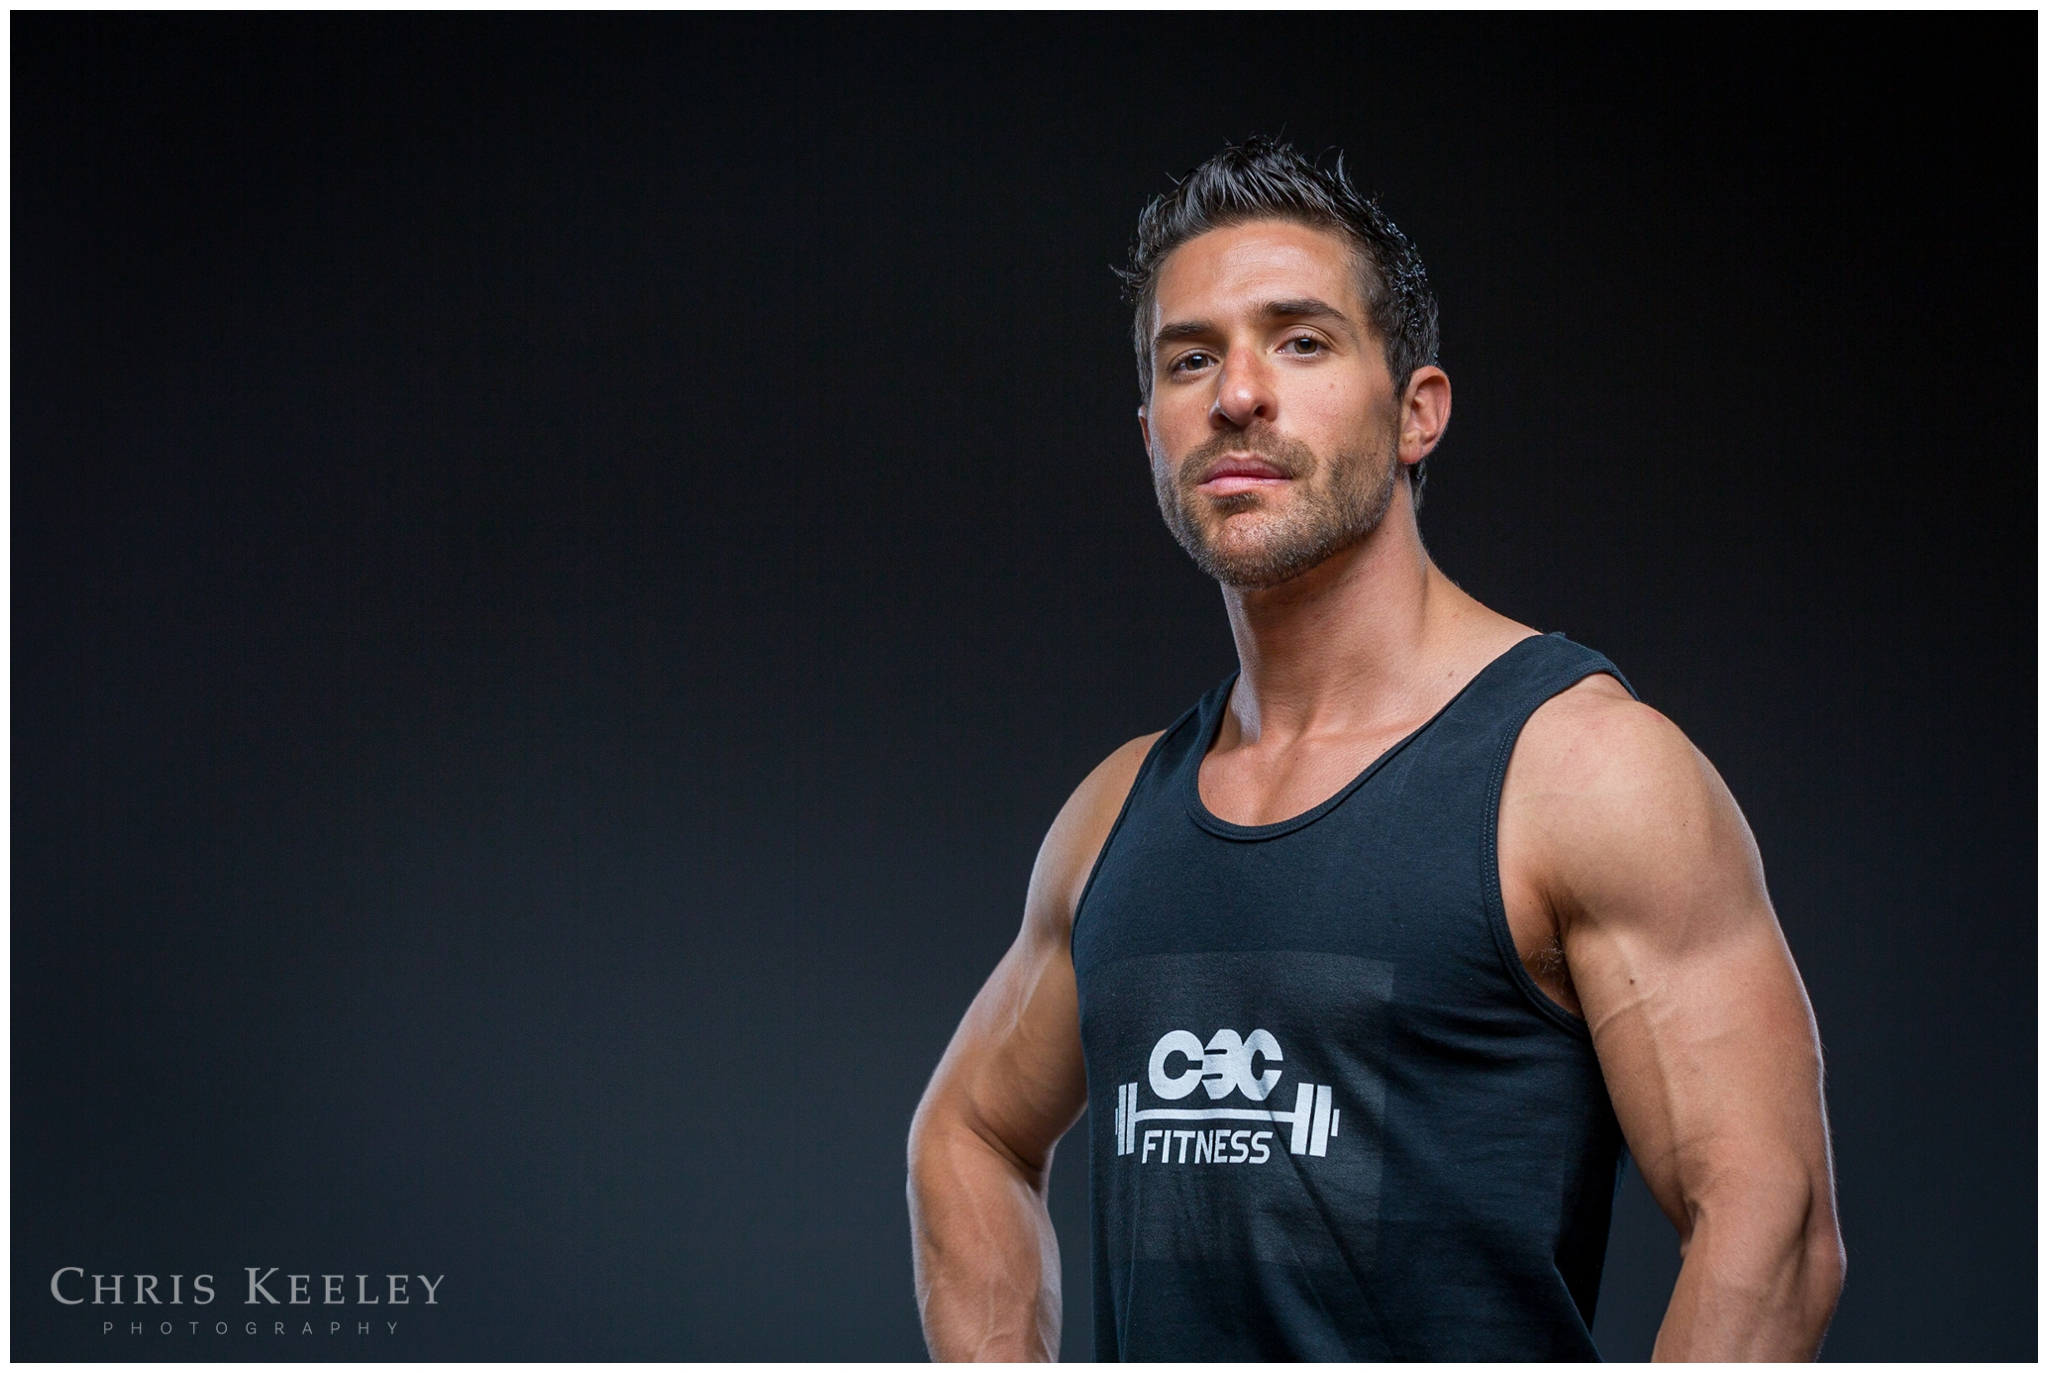 fitness-photos-personal-trainer-maine-new-hampshire-chris-keeley-photography-08.jpg